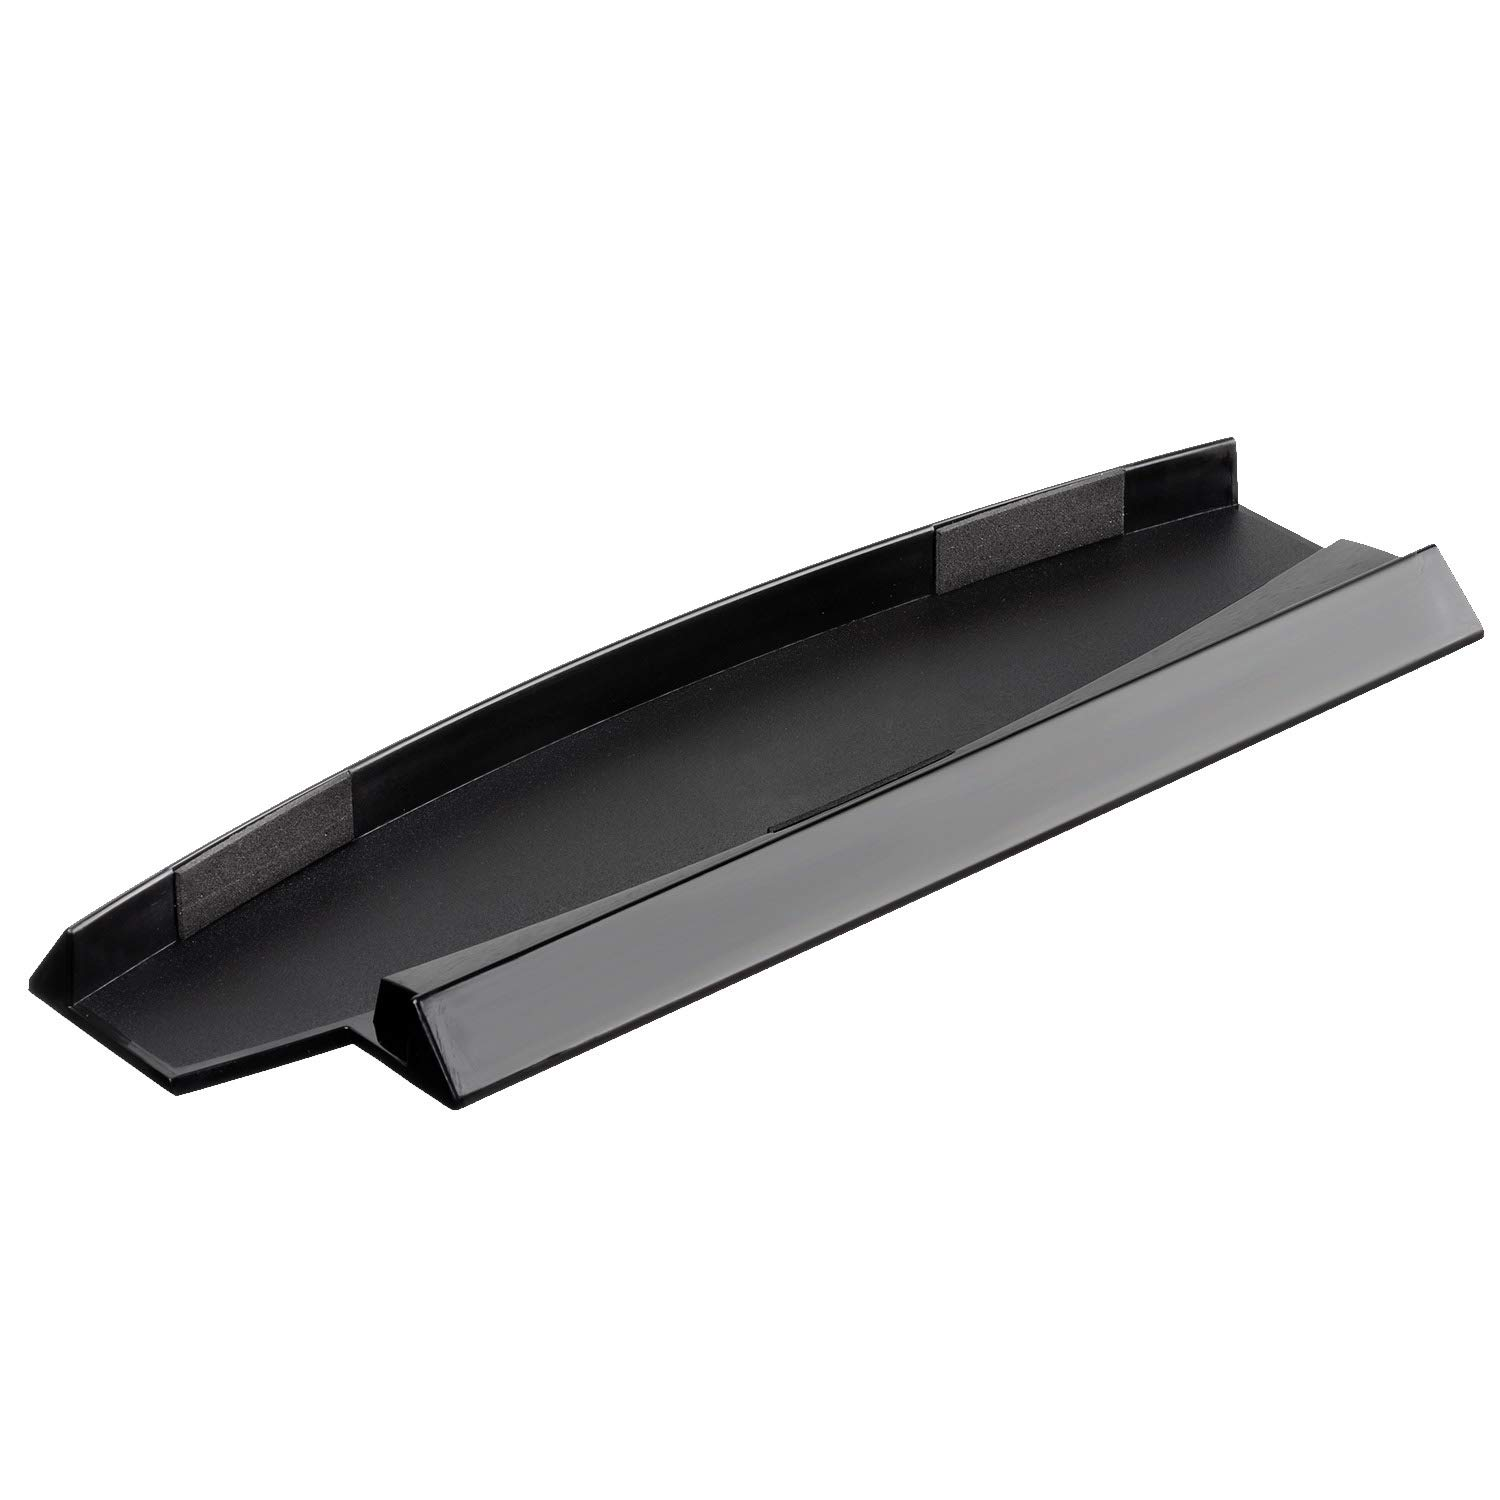 OSTENT Skid Proof Console Vertical Stand Compatible for Sony PS3 Slim Console Color Black by OSTENT